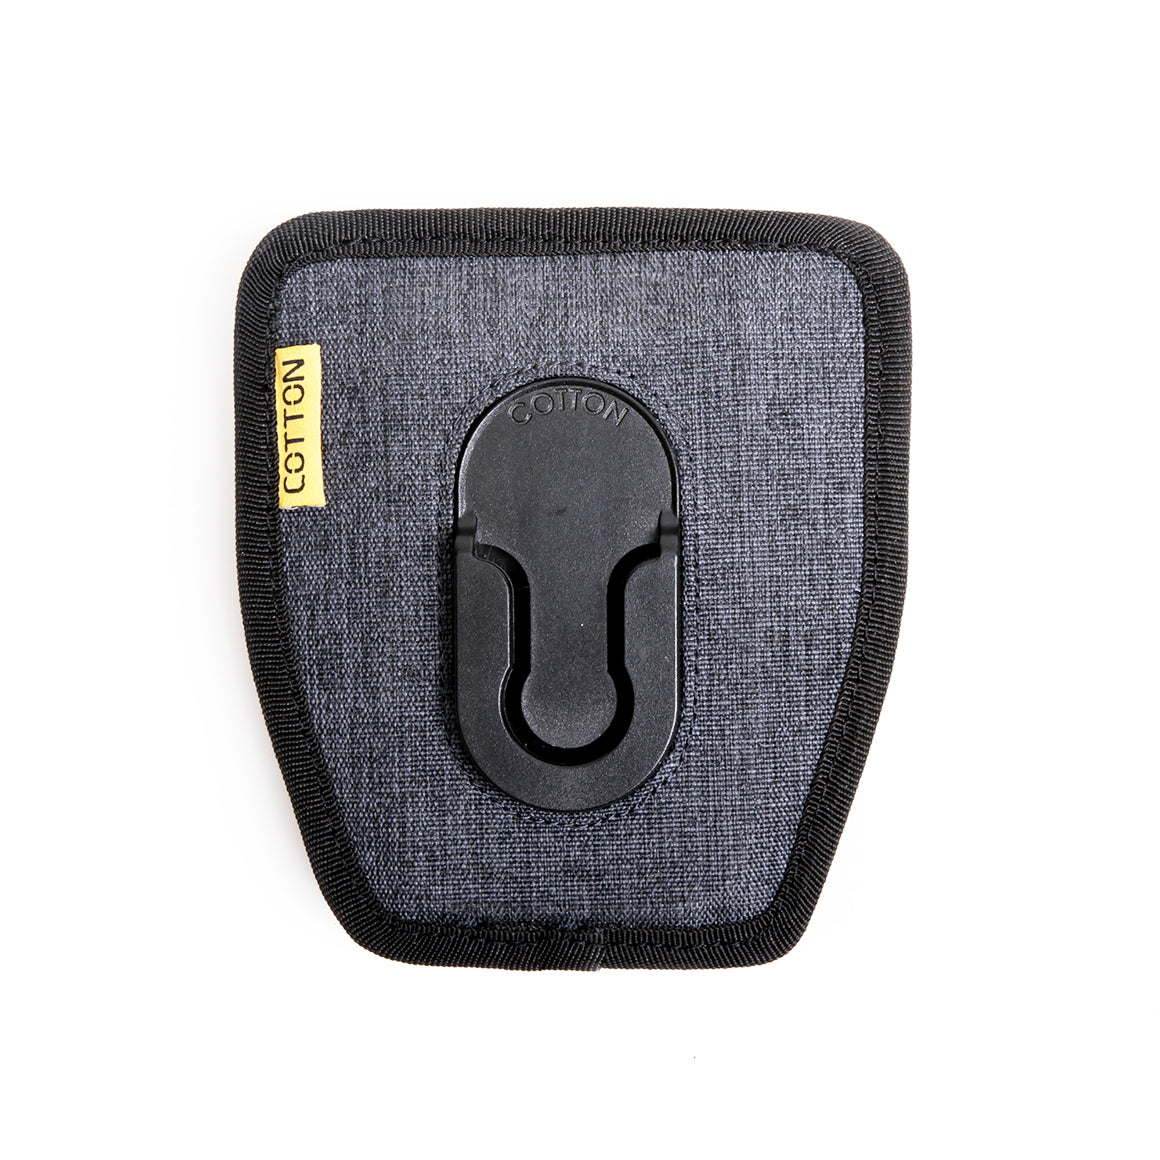 Cotton Carrier Charcoal Grey G3 Wanderer Camera Side Holster